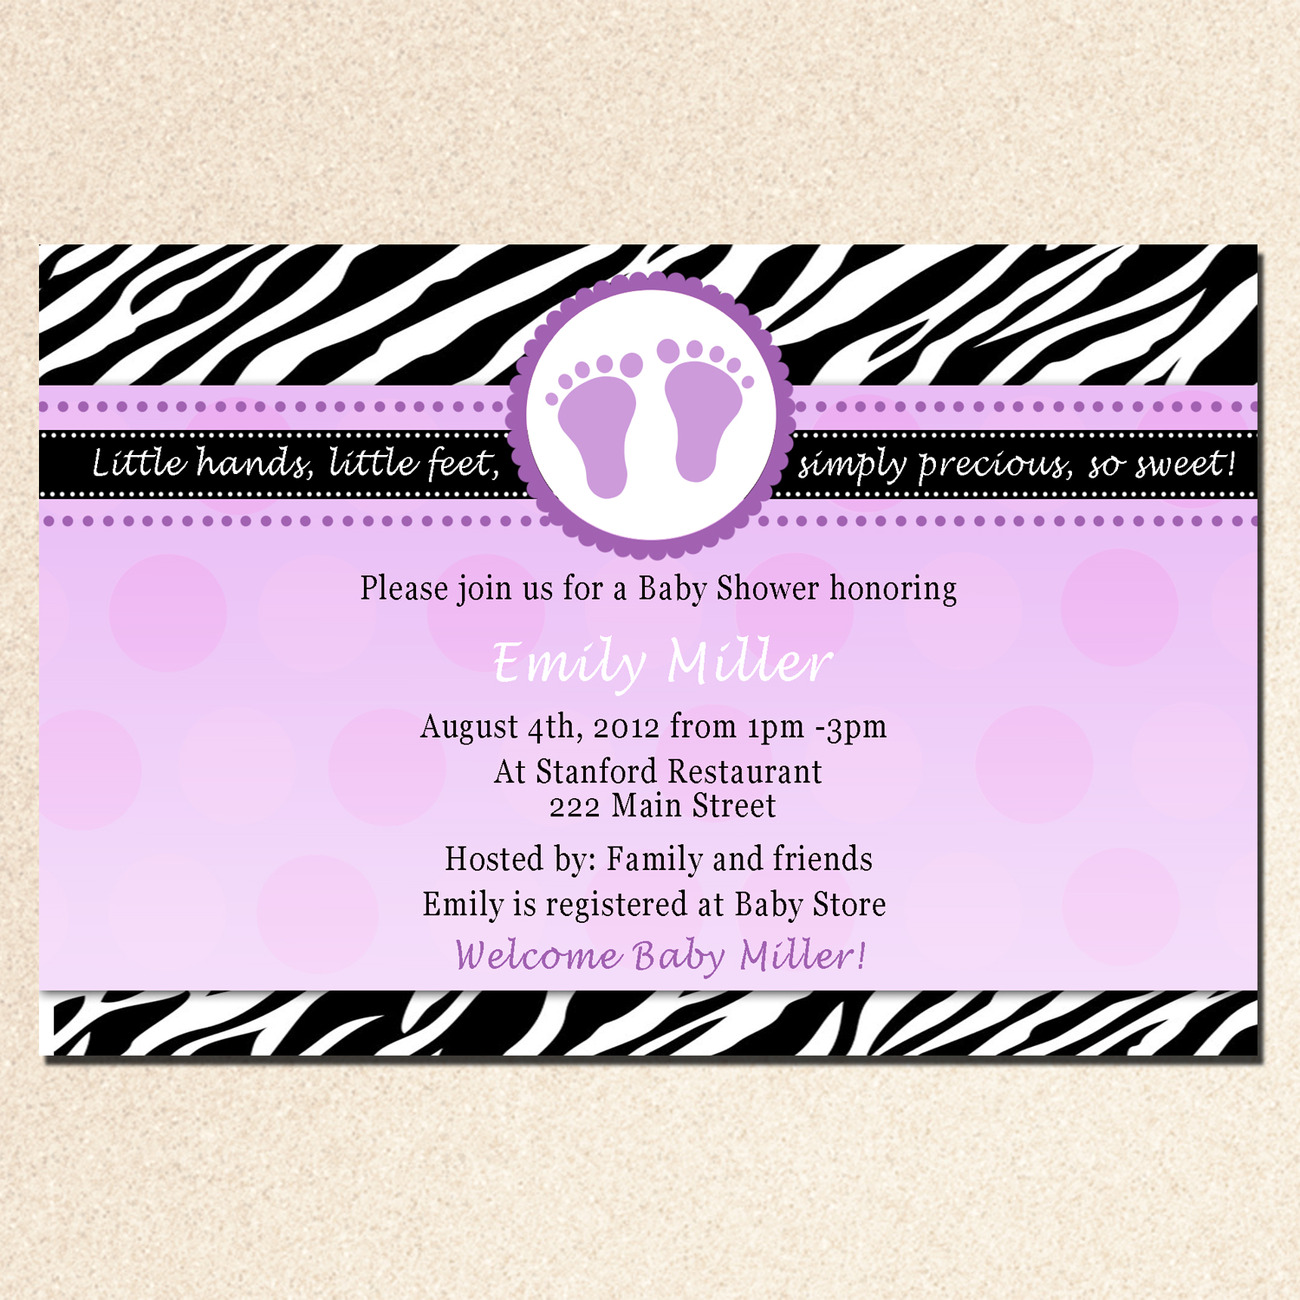 30 Personalized Baby Shower Purple Prune Violet Invitations Card Feet Treads